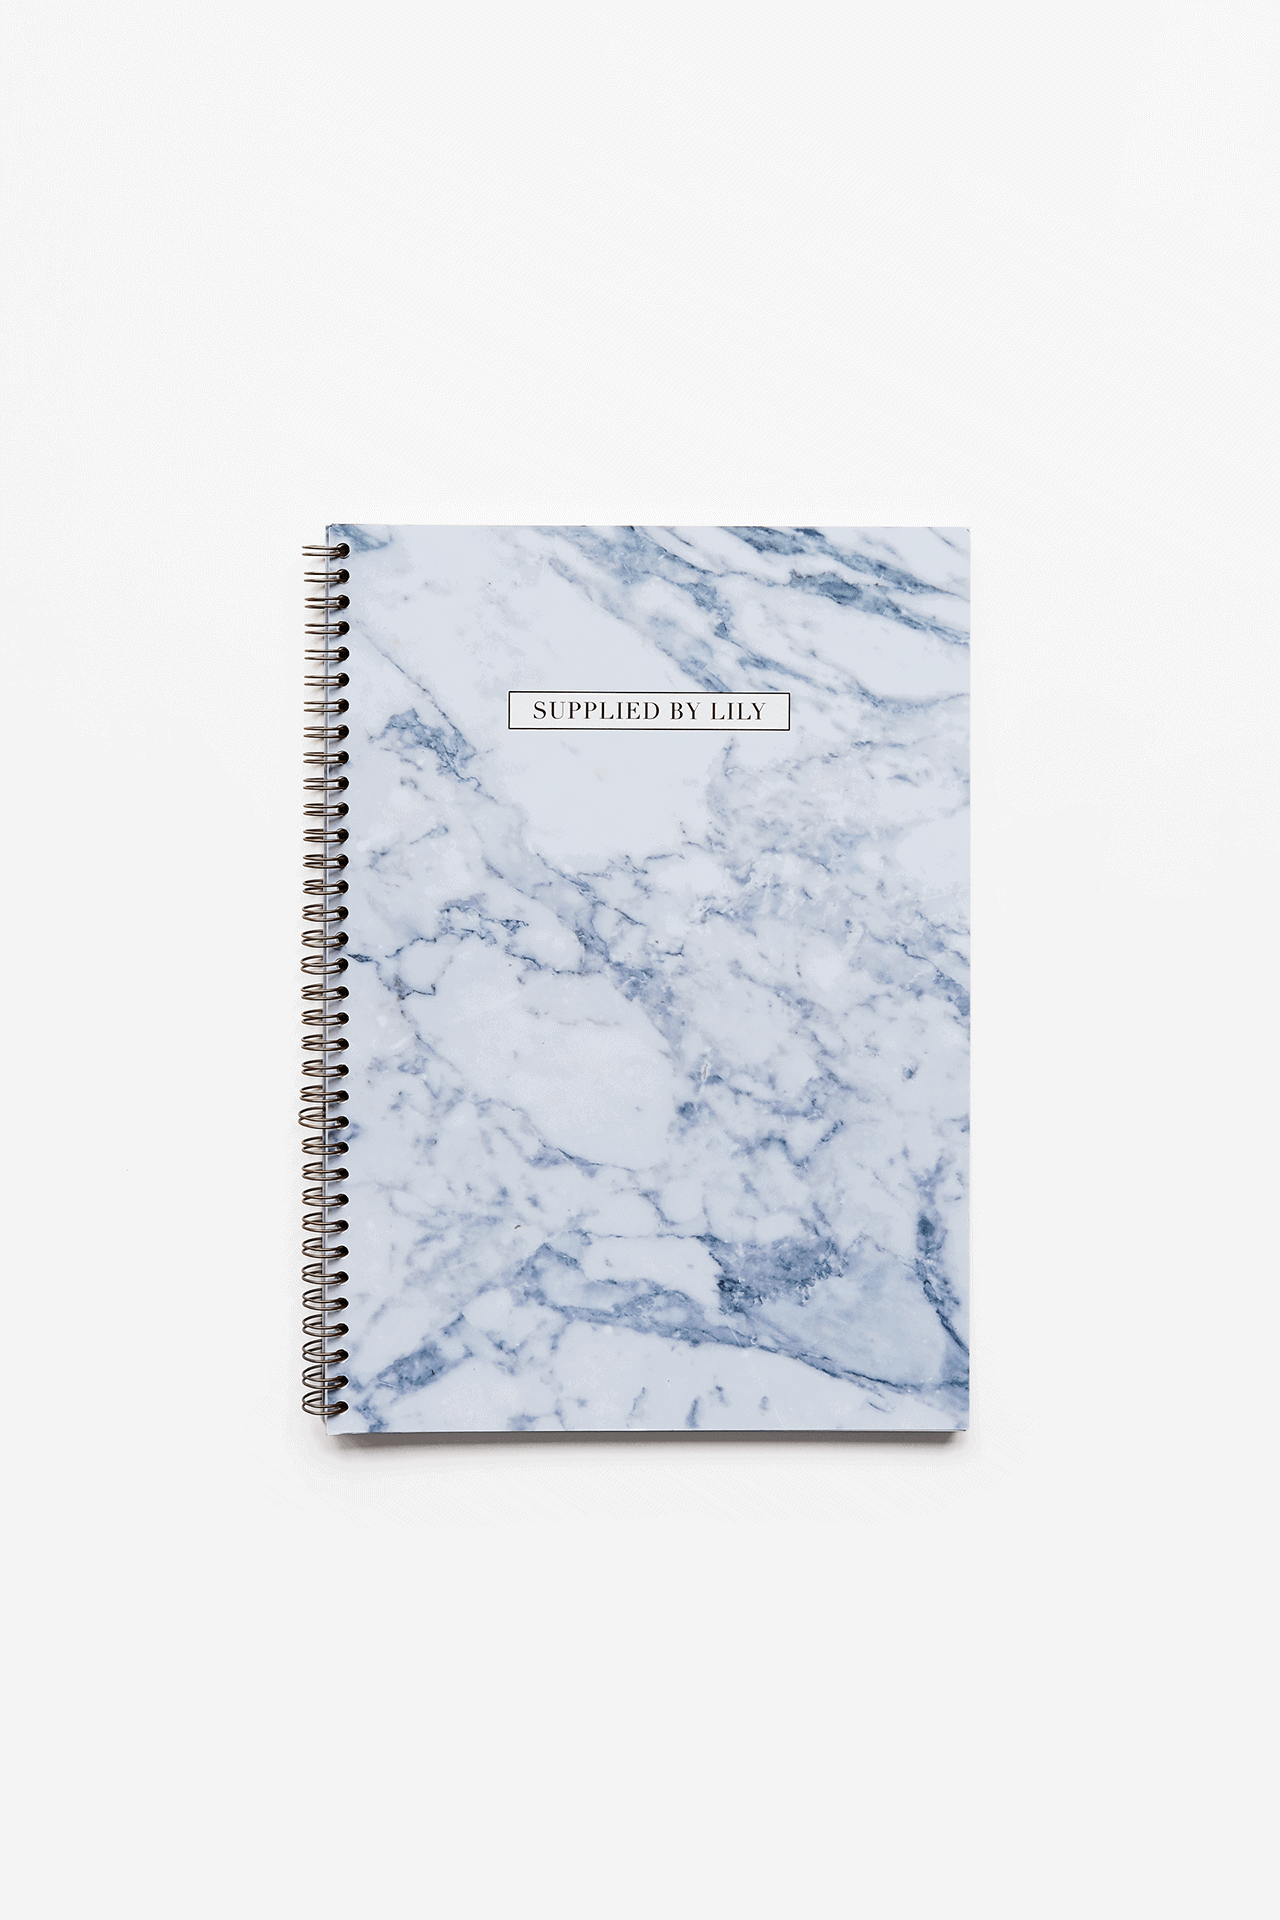 new concept 6b12c 626cd A4 Spiral Notebook in Luxurious Marble – Supplied by Lily   Luxury ...